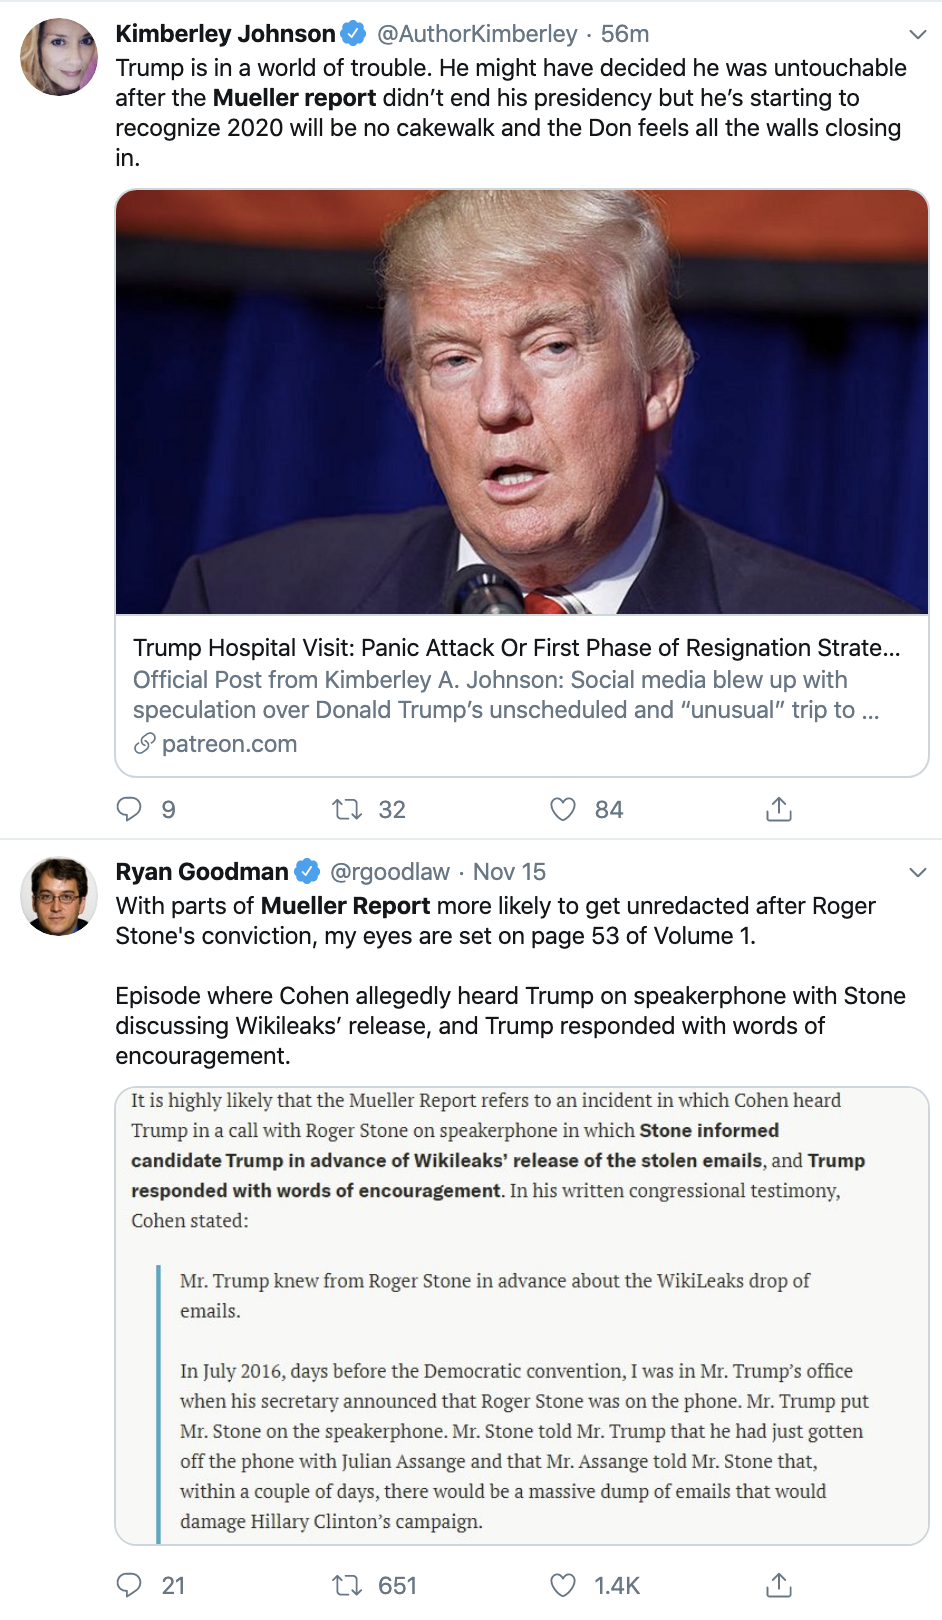 Screen-Shot-2019-11-18-at-2.20.37-PM Fallen Soldier's Family Disrespected By Trump Names 2020 Endorsement Activism Corruption Crime Domestic Policy Donald Trump Election 2016 Election 2020 Featured Foreign Policy Impeachment Investigation Islamaphobia Military National Security Politics Protest Racism Top Stories Veterans War